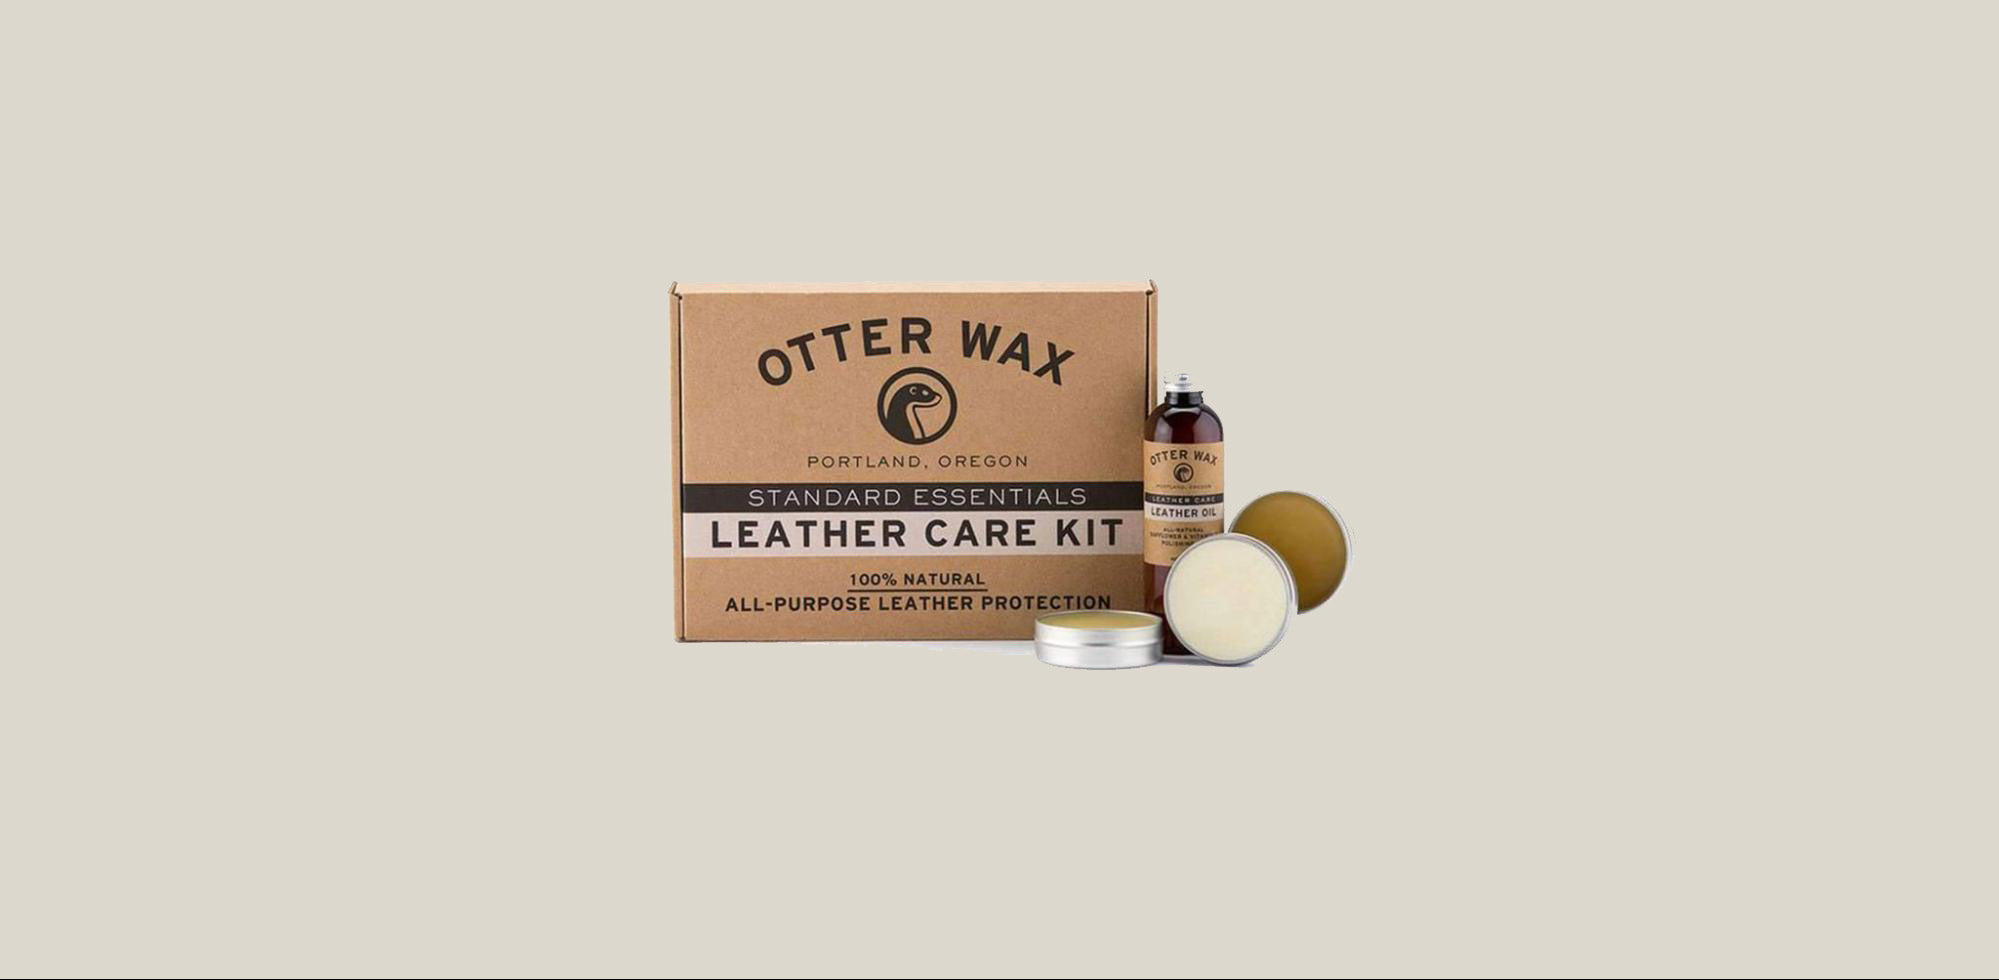 Apply leather wax